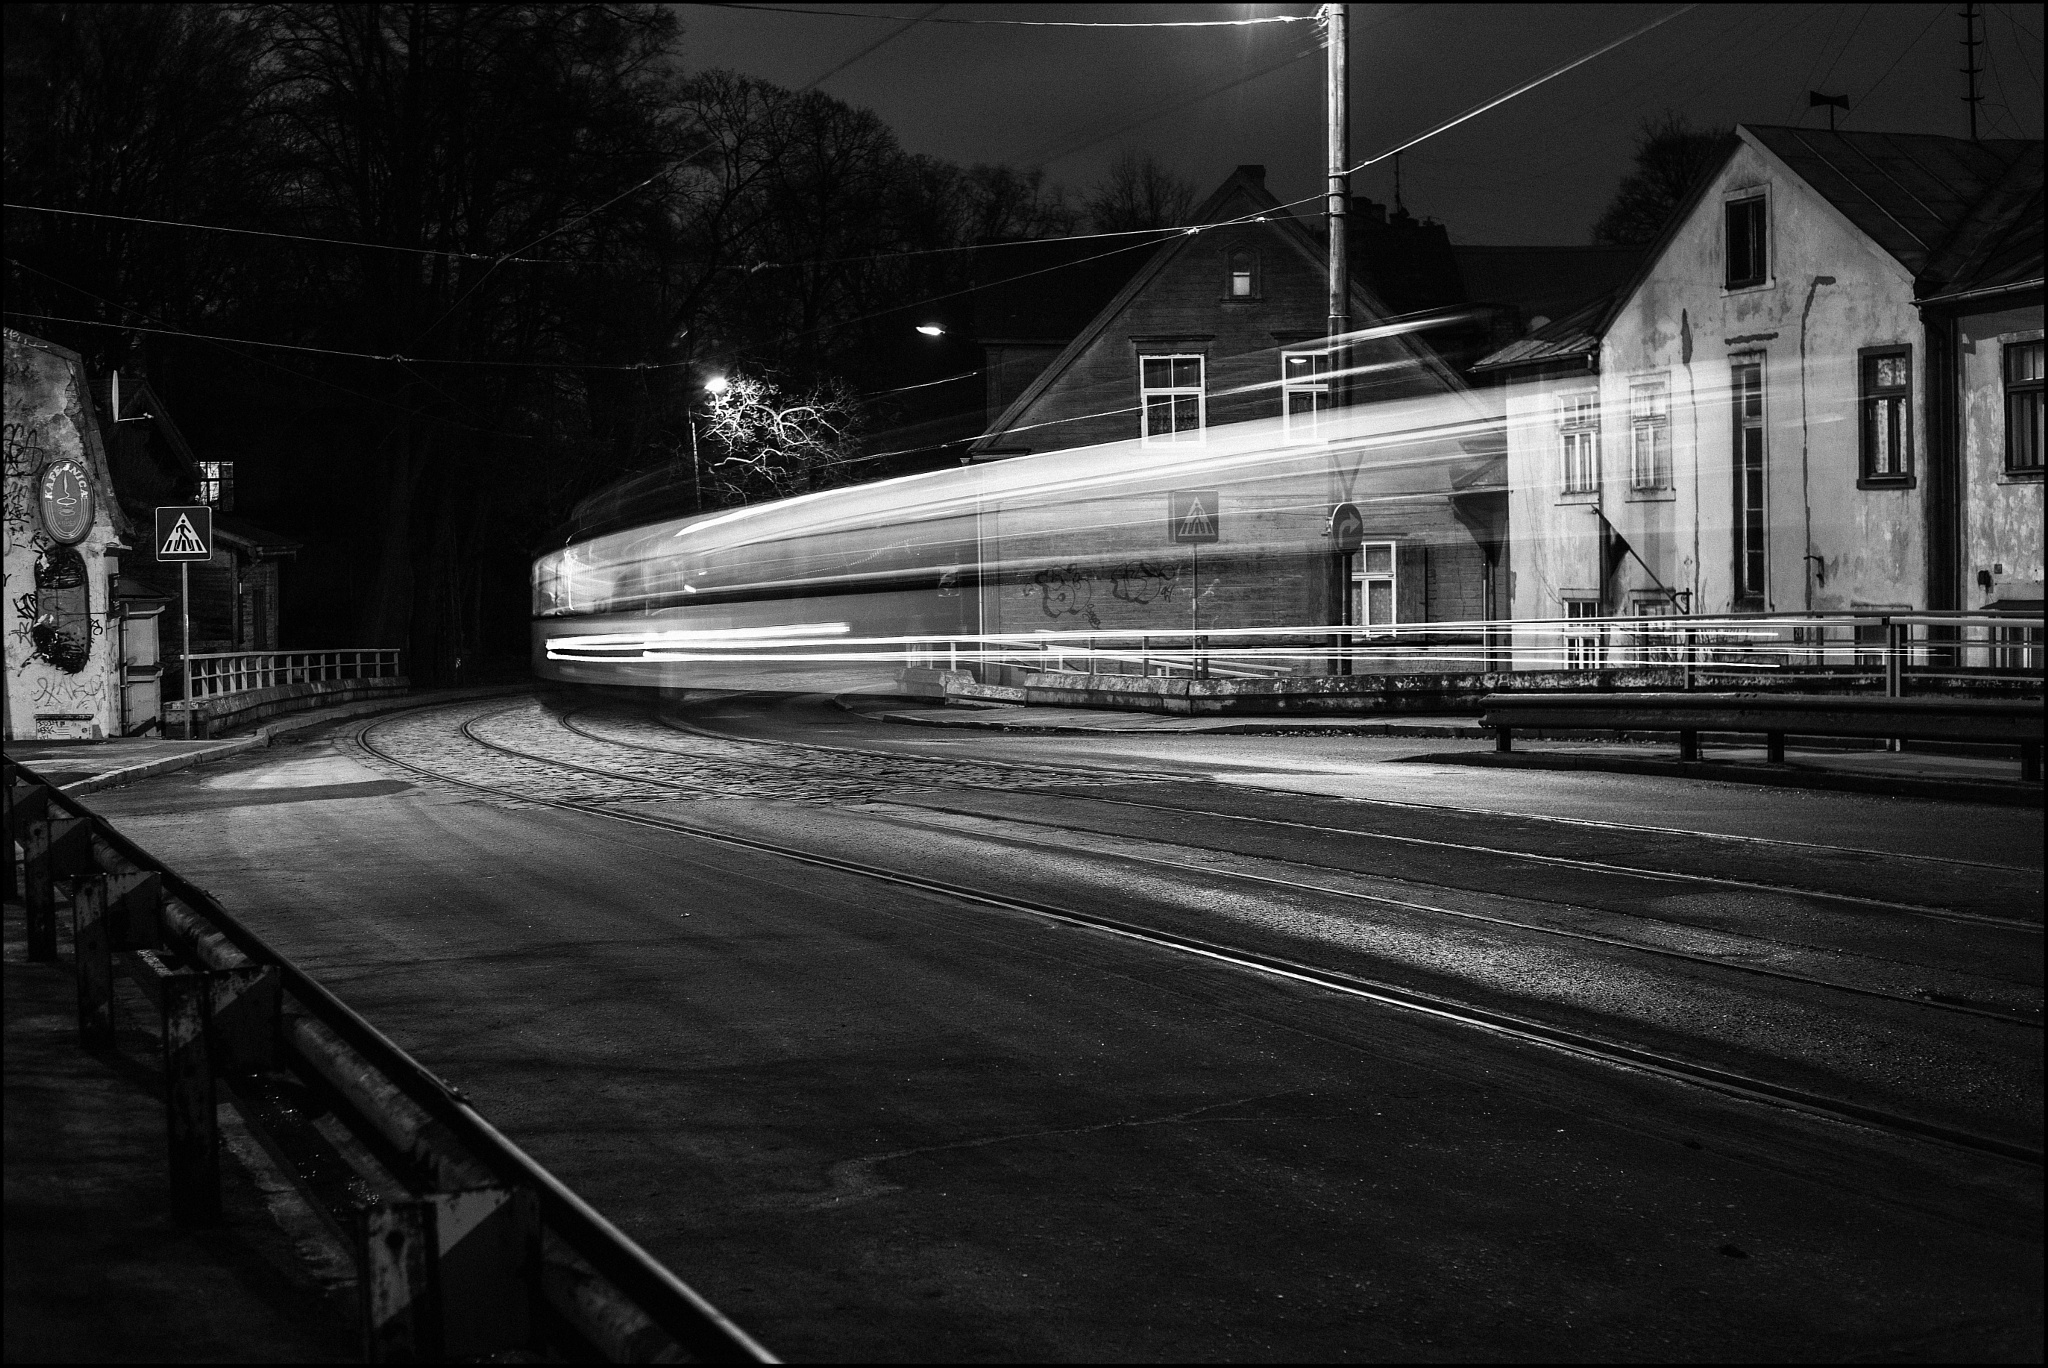 Night Tram by IndarsVetrajs